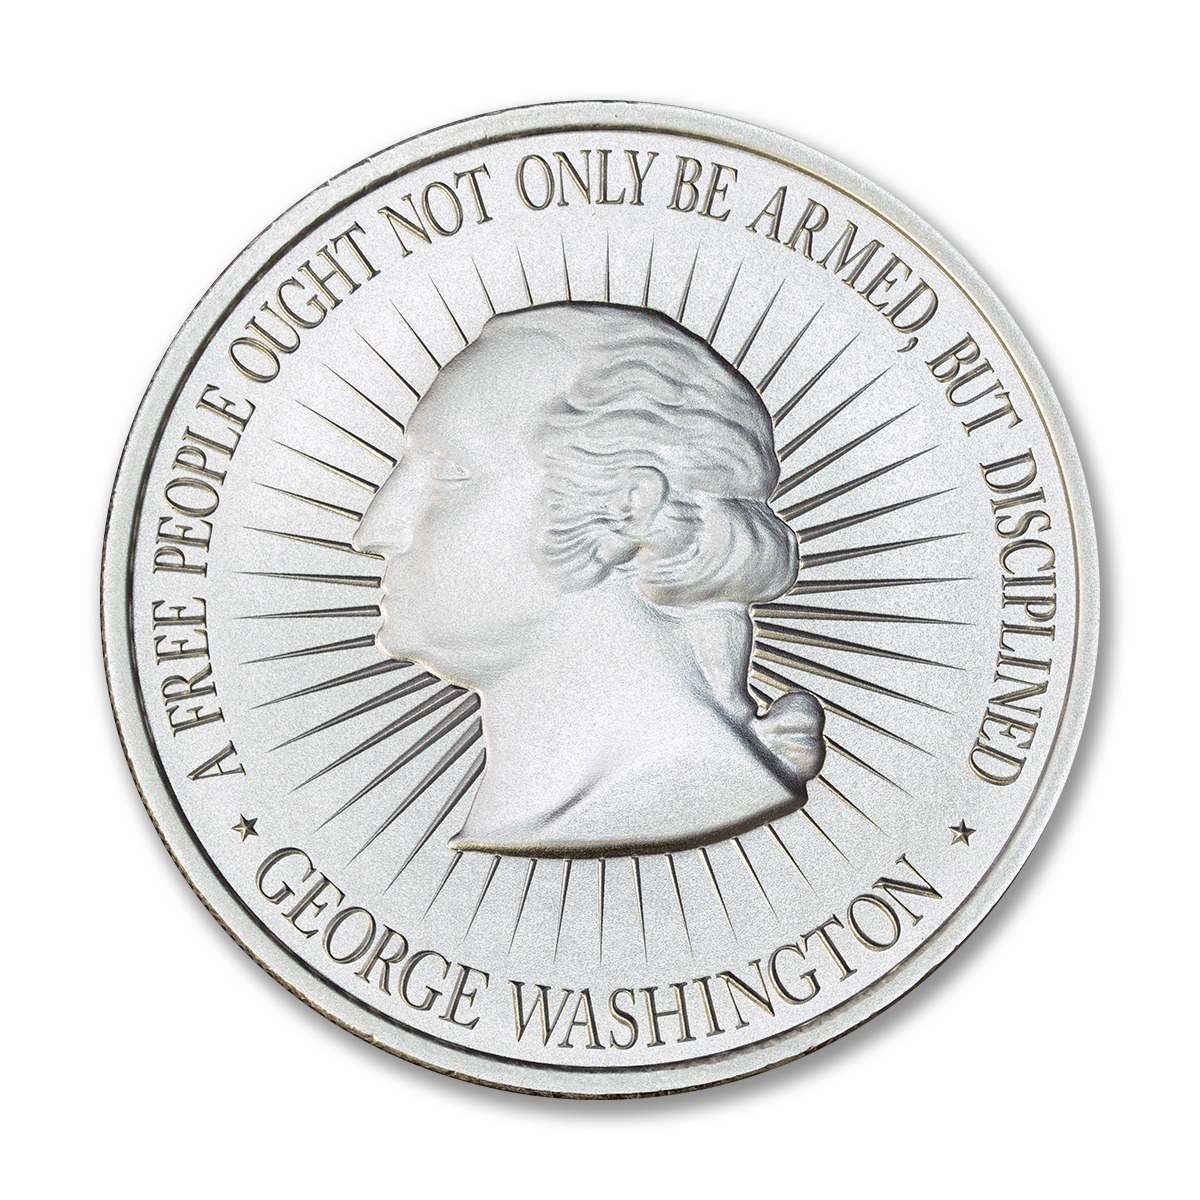 WASHINGTON BUST / BILL OF RIGHTS 2A – 2 TROY OUNCE – 50MM